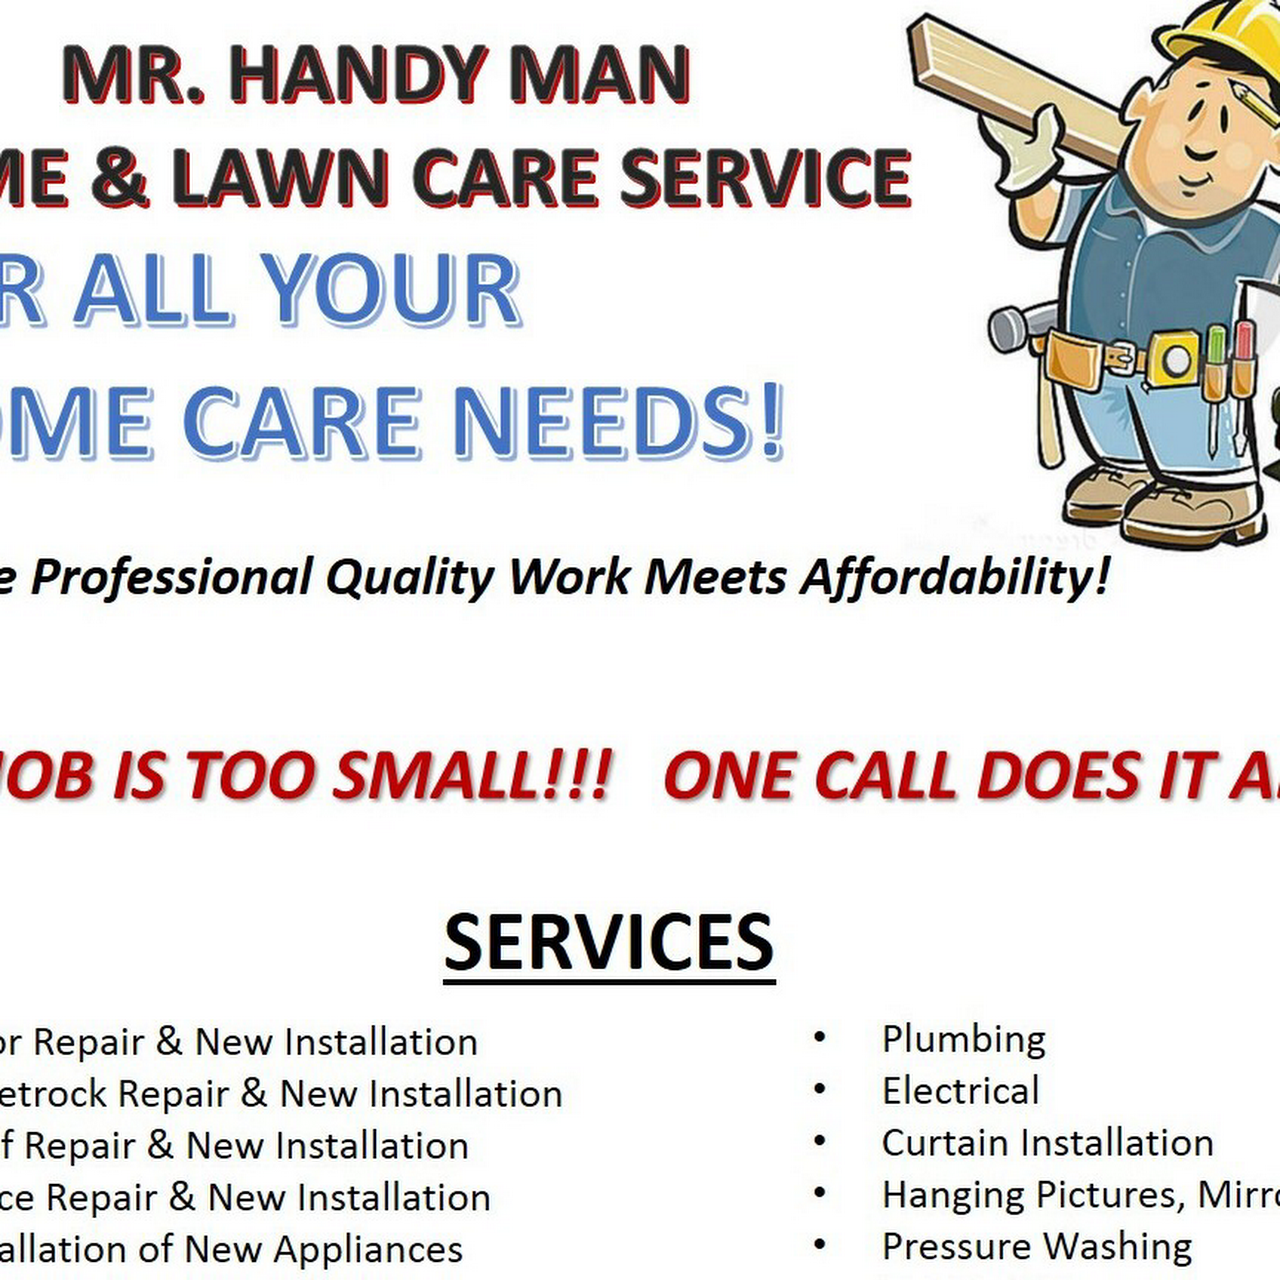 MR  HANDYMAN HOME CARE AND LAWN SERVICE - Handyman services